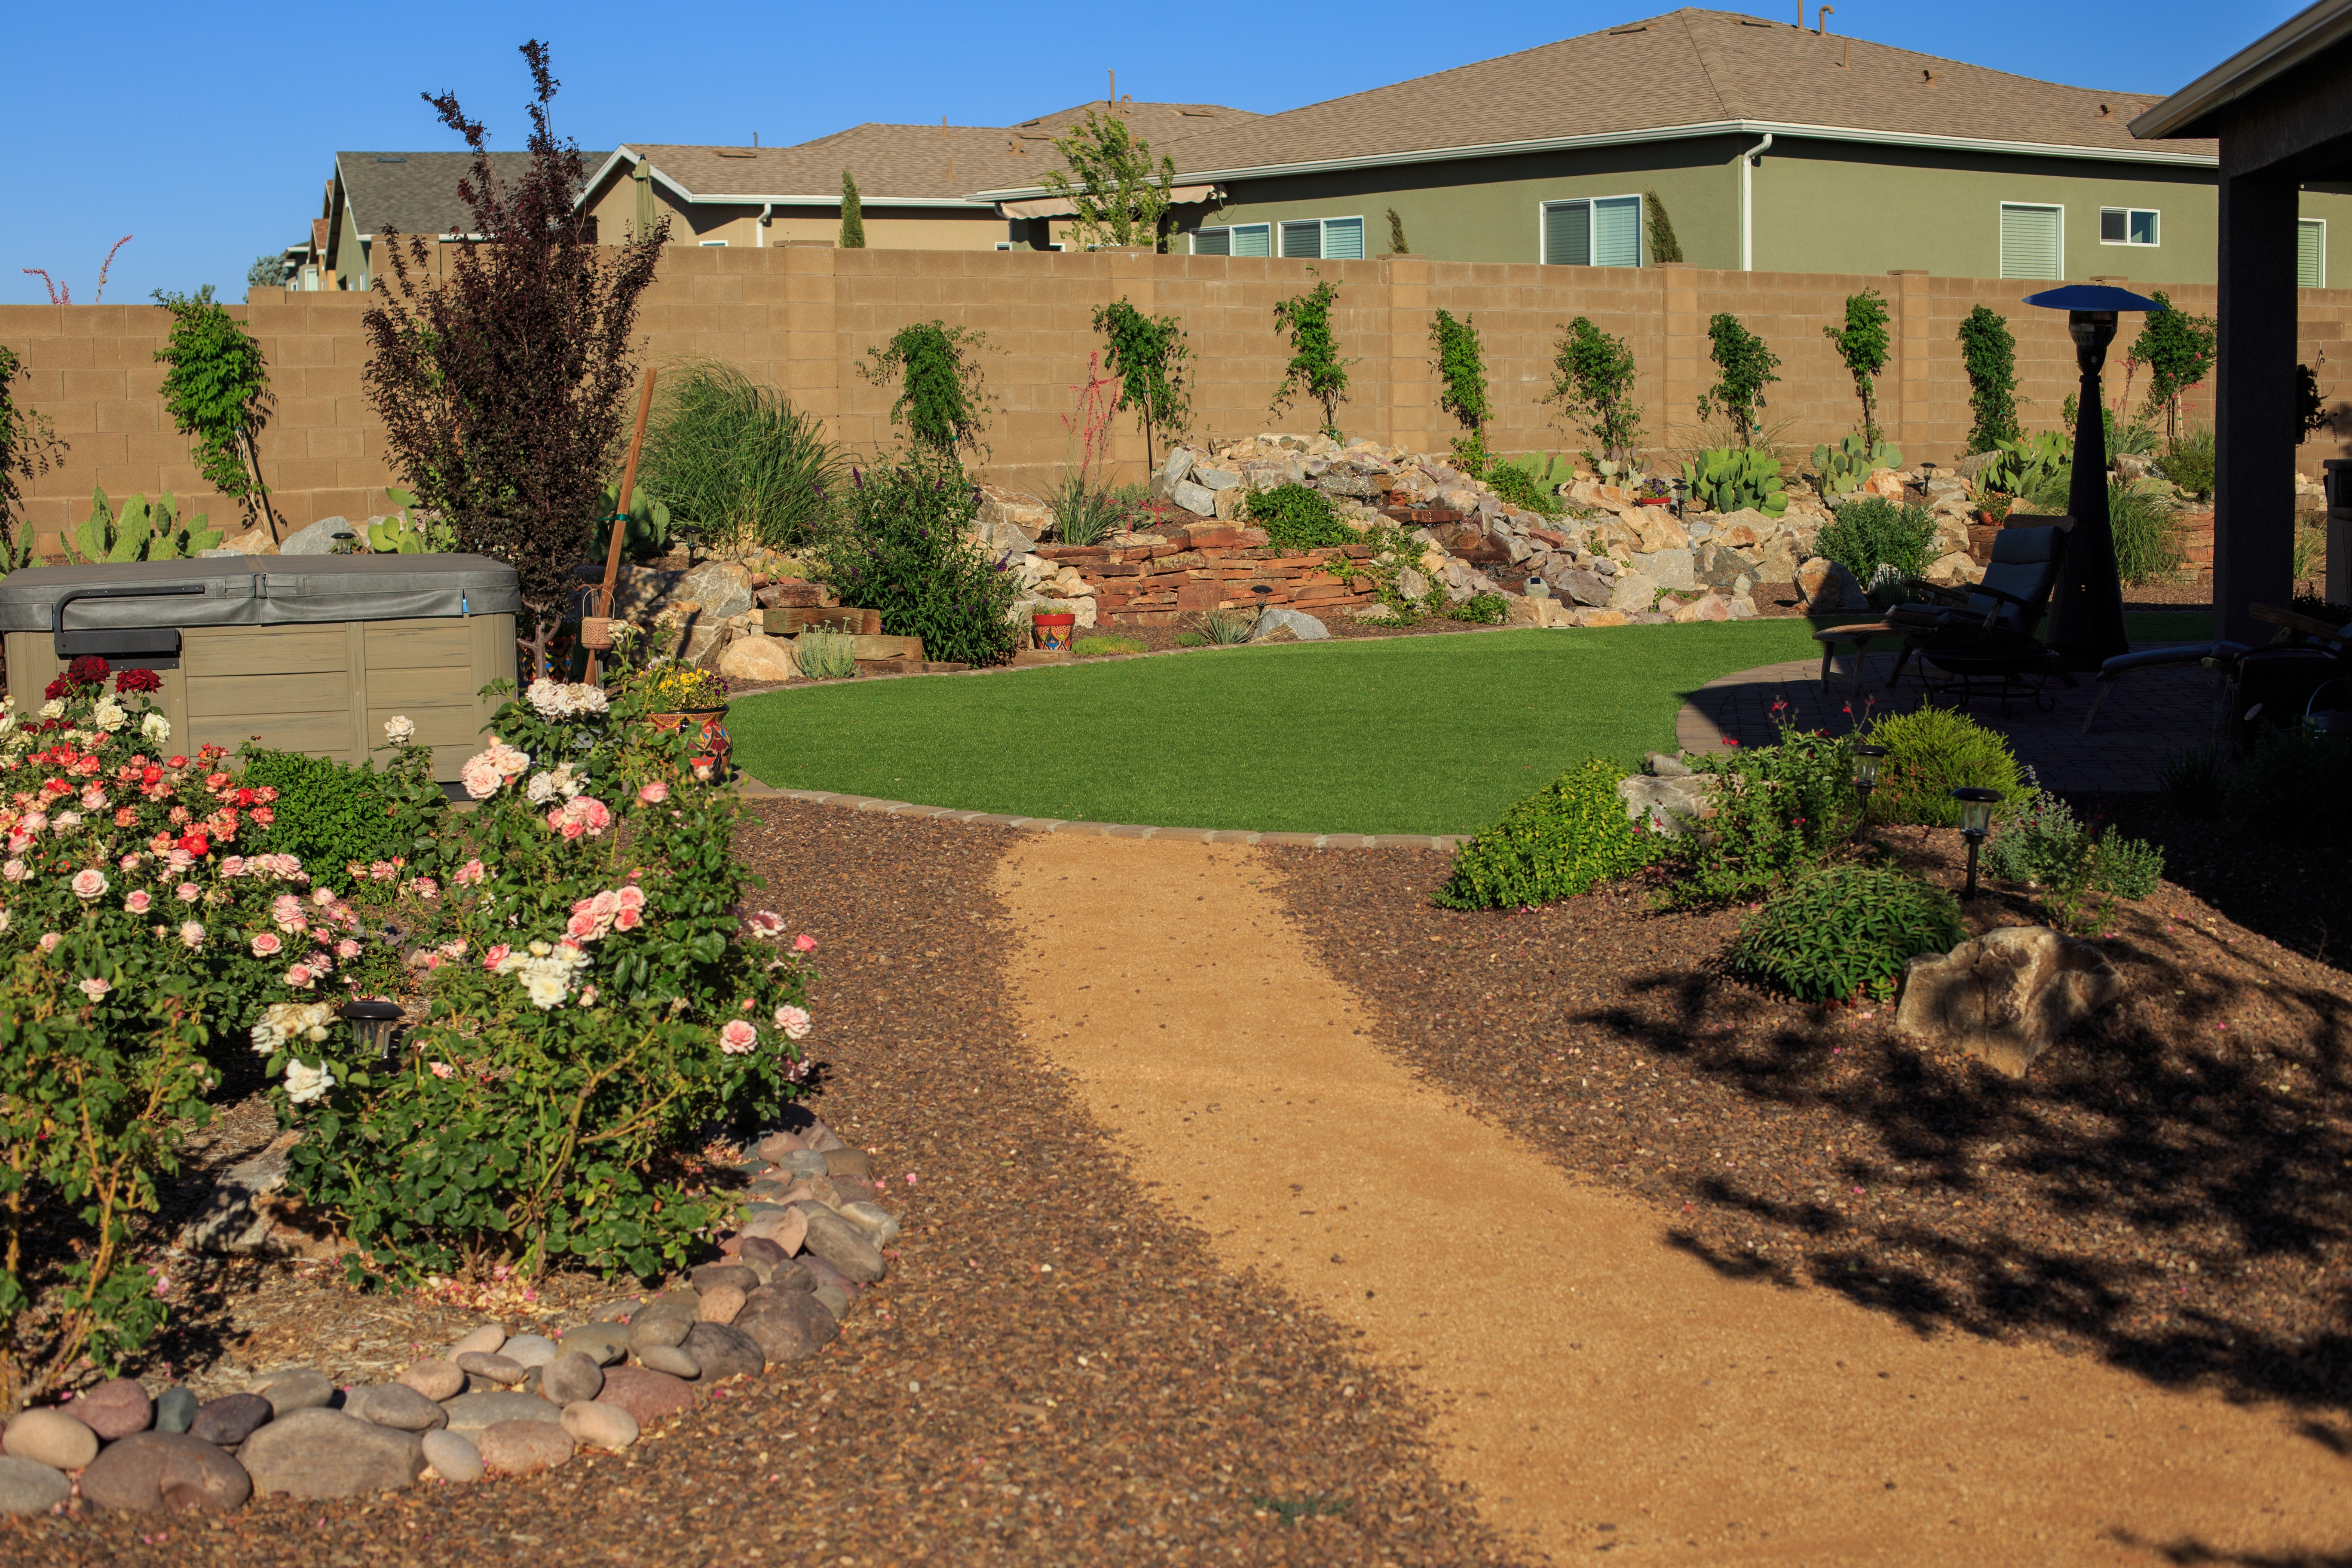 Landscaping Without A Lawn New Life Landscapes Inc